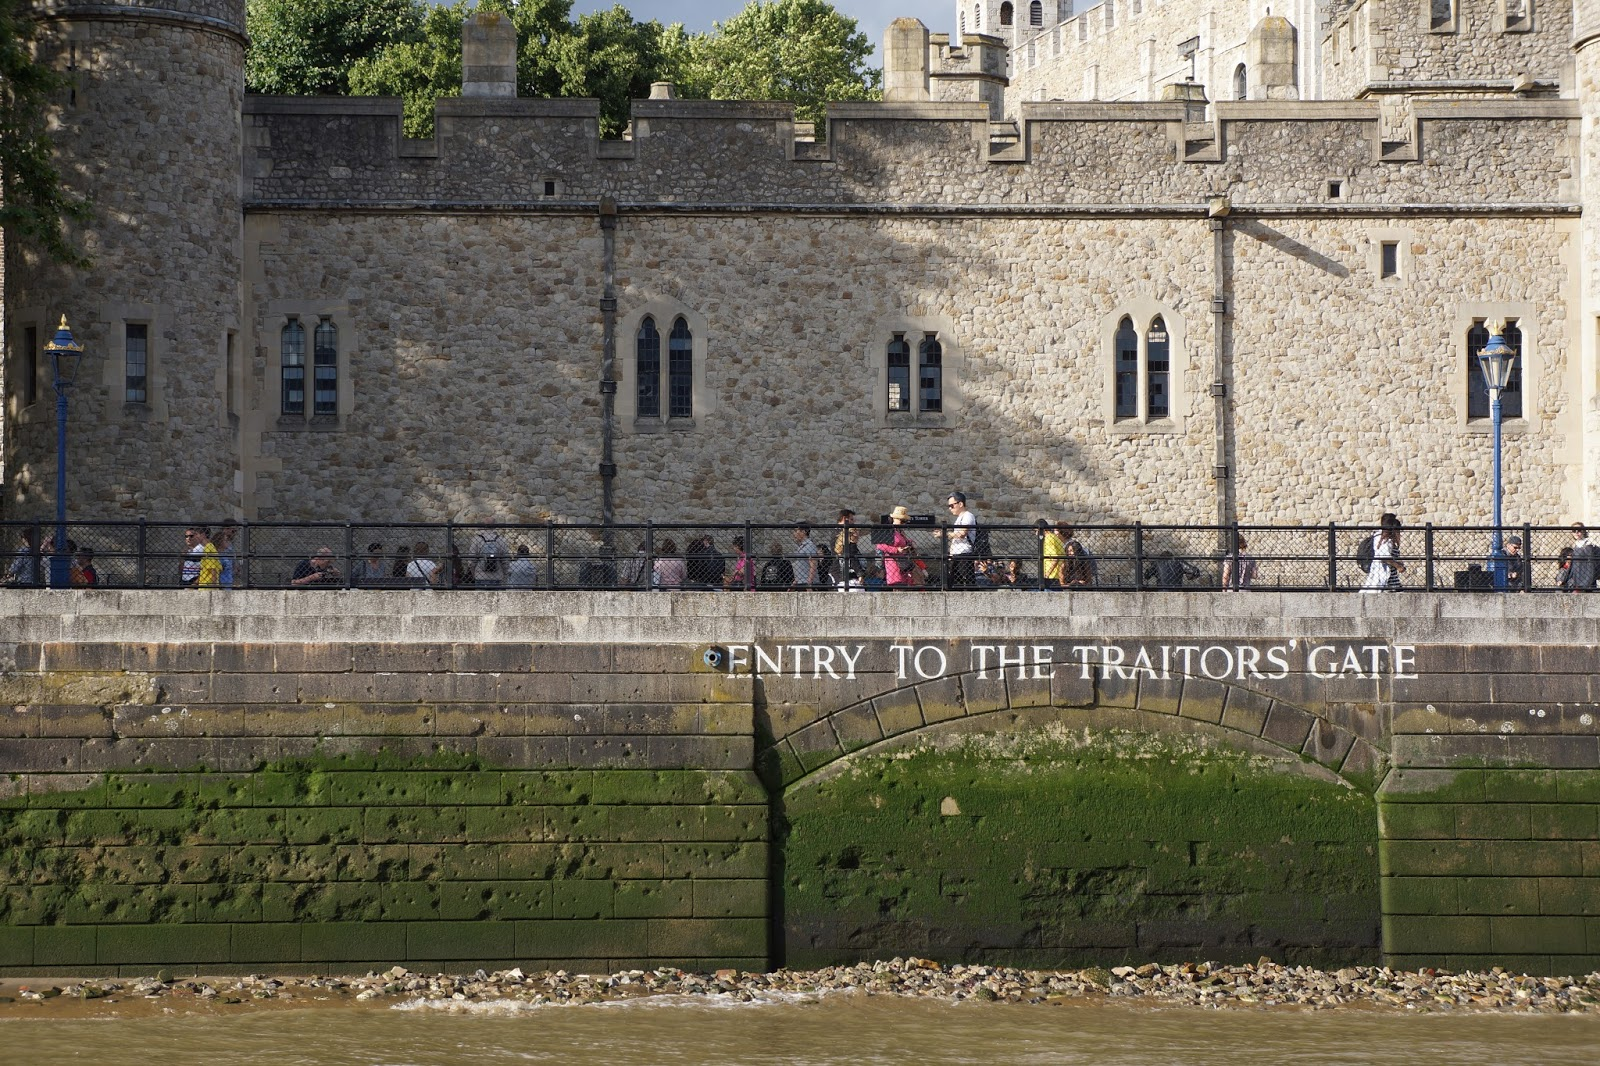 the tower entry to the traitor's gate from the riverside from a boat